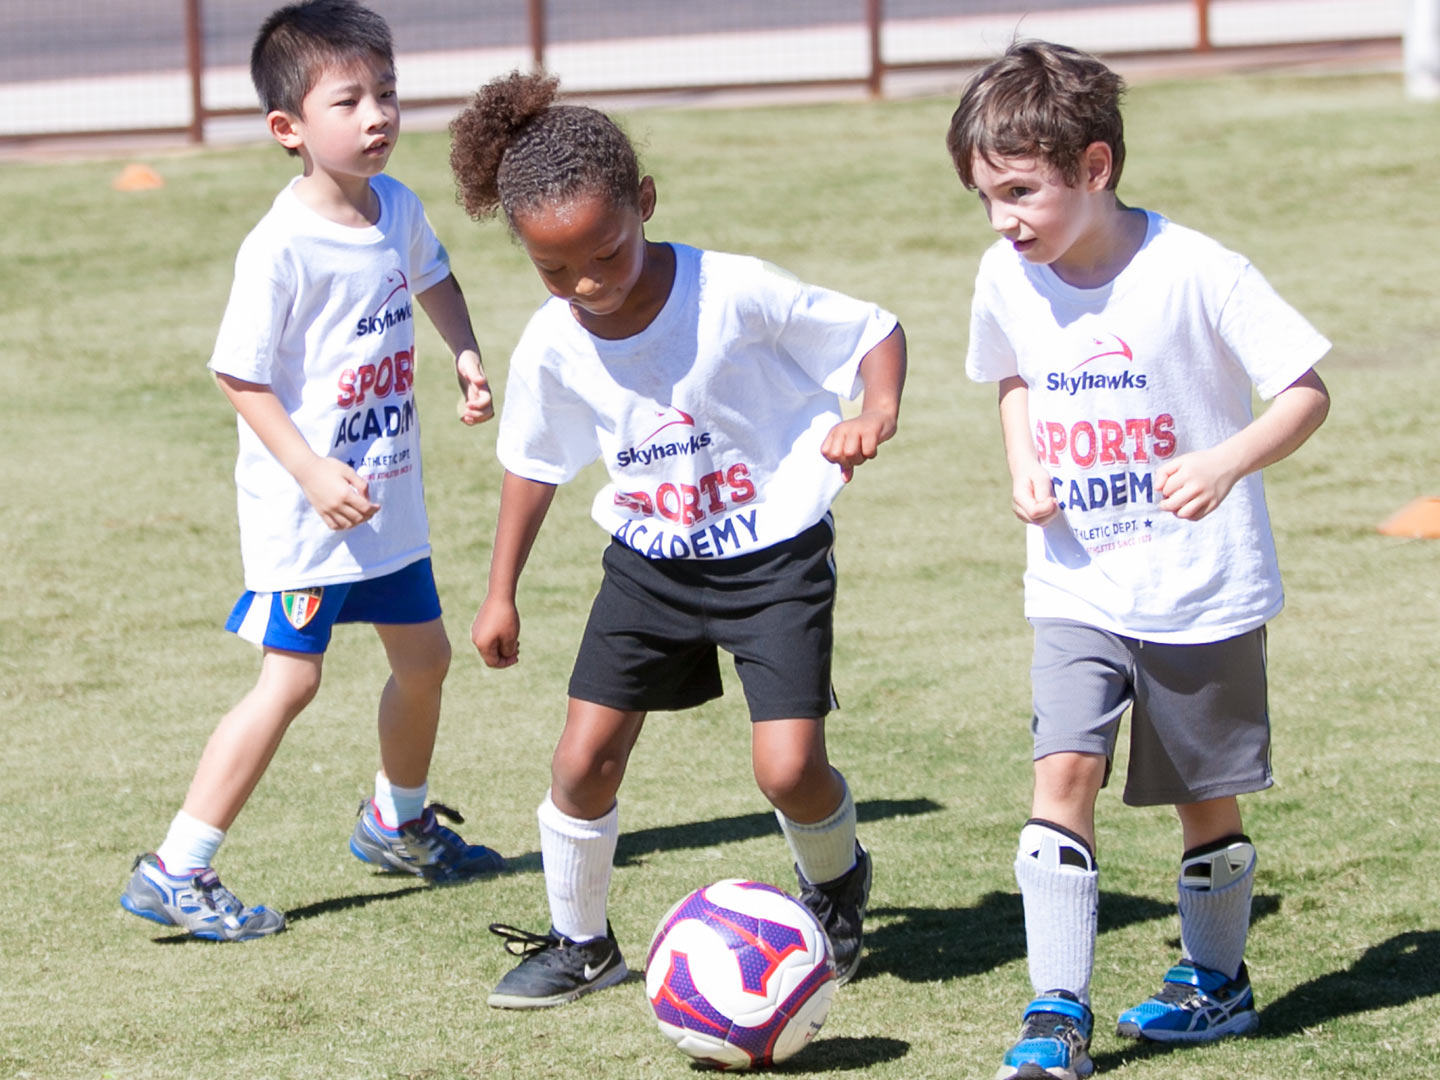 Girl-Dribbling-Ball-Between-Boys